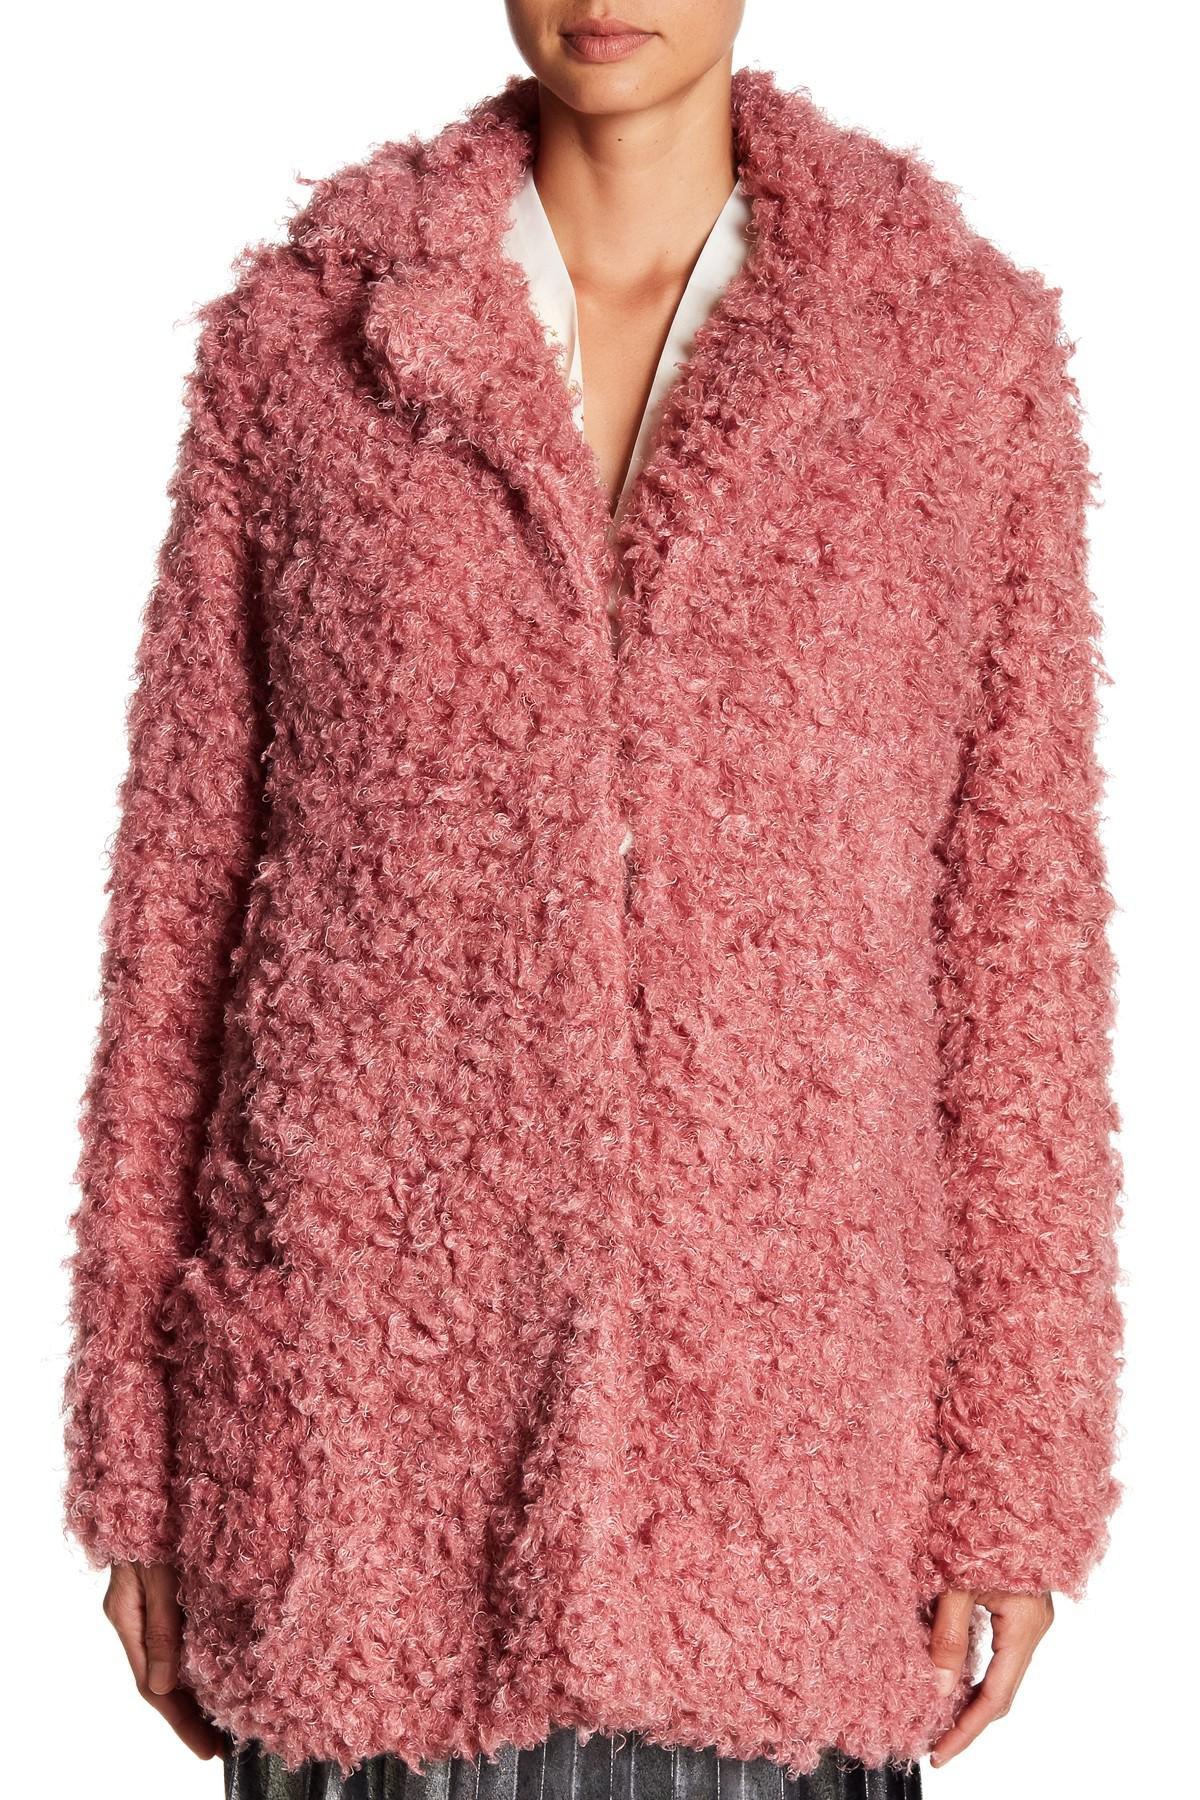 21e1e6544 Romeo and Juliet Couture Multicolor Fuzzy Faux Fur Jacket